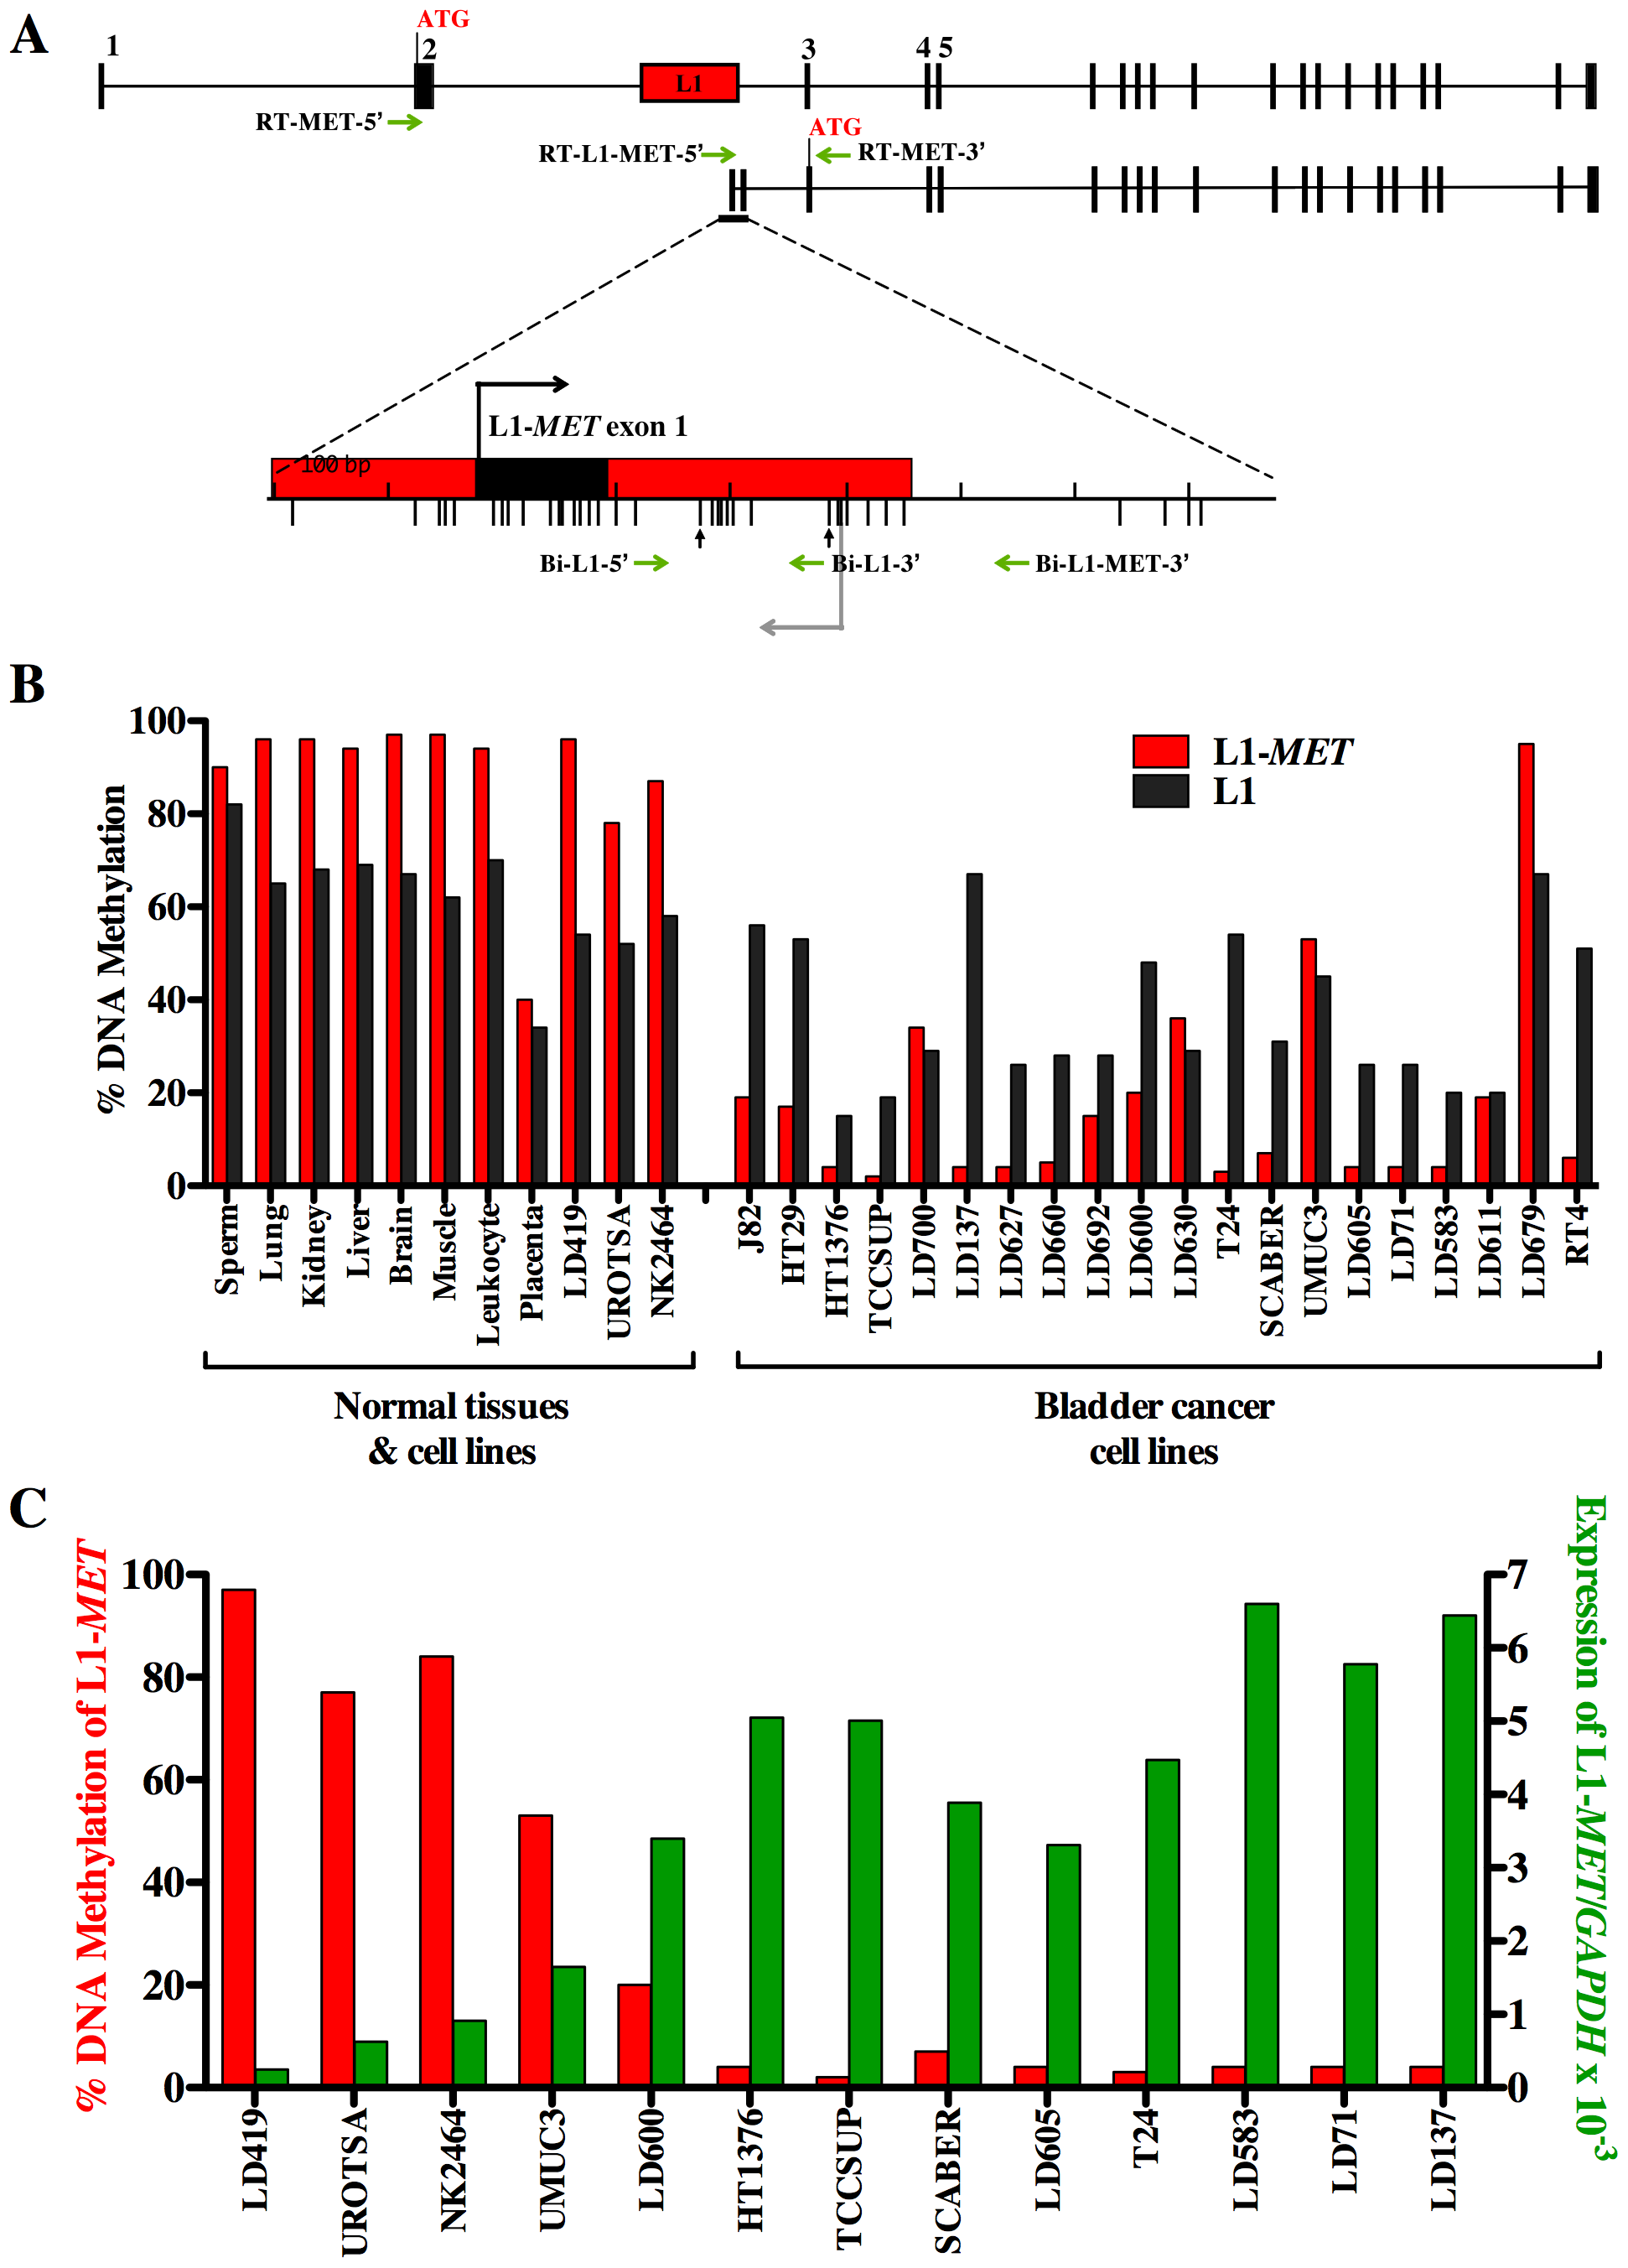 Methylation and expression of L1-<i>MET</i> correlates in cell lines.